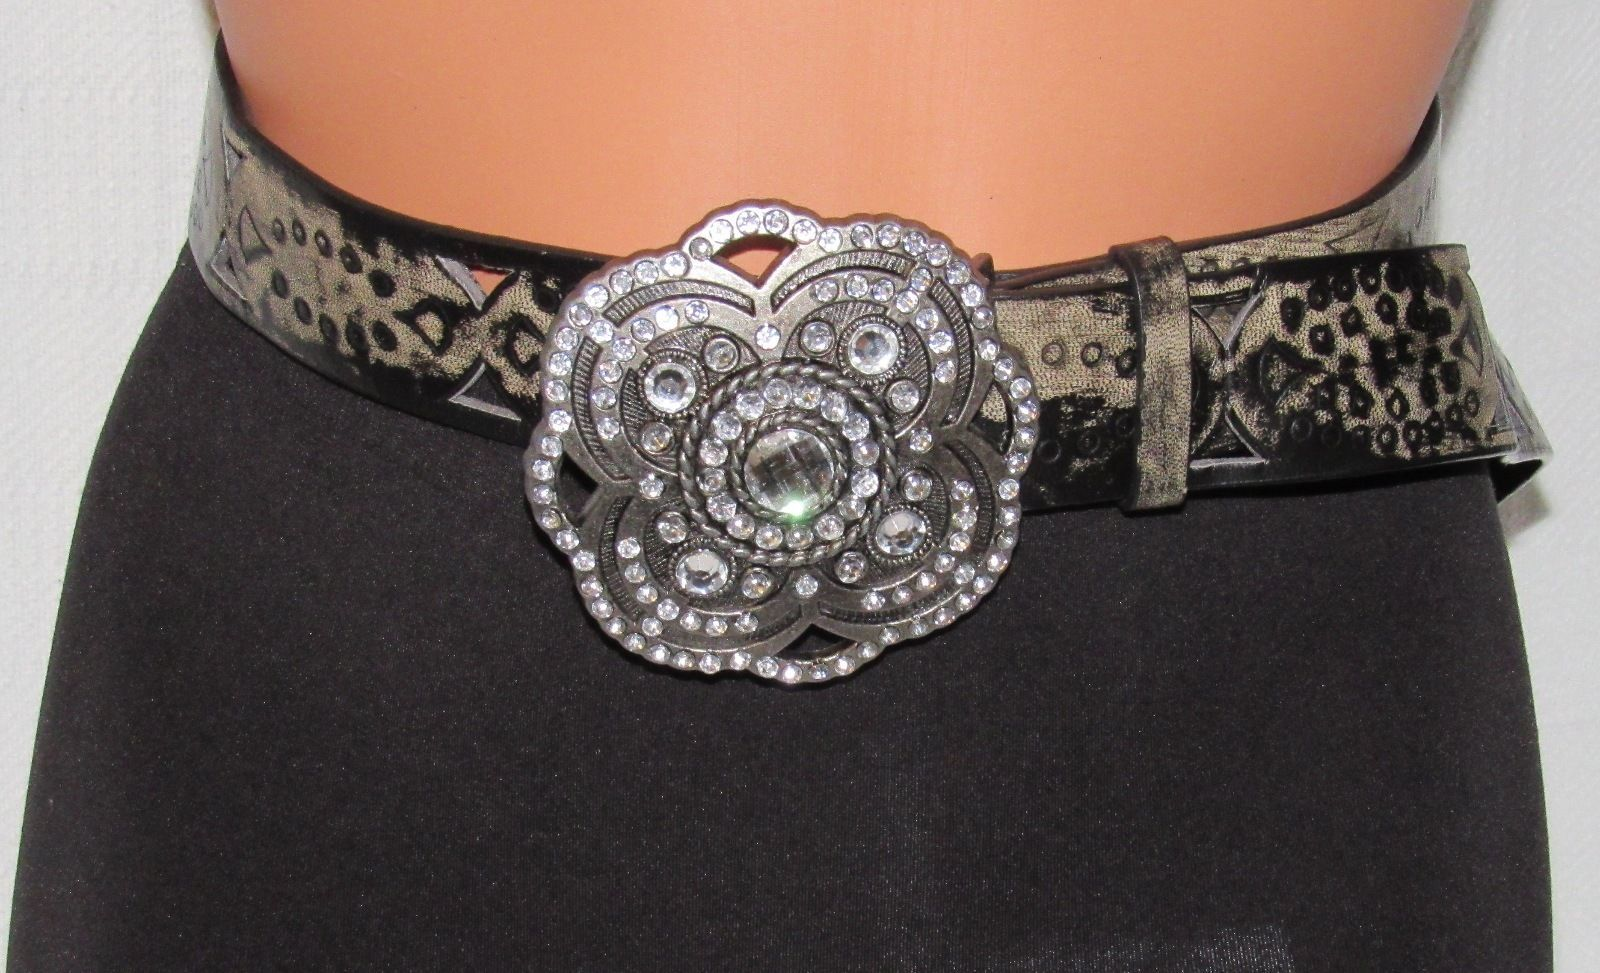 YMI Jeanswear Printed Western Fashion Belt with Bling Buckle Size: 7